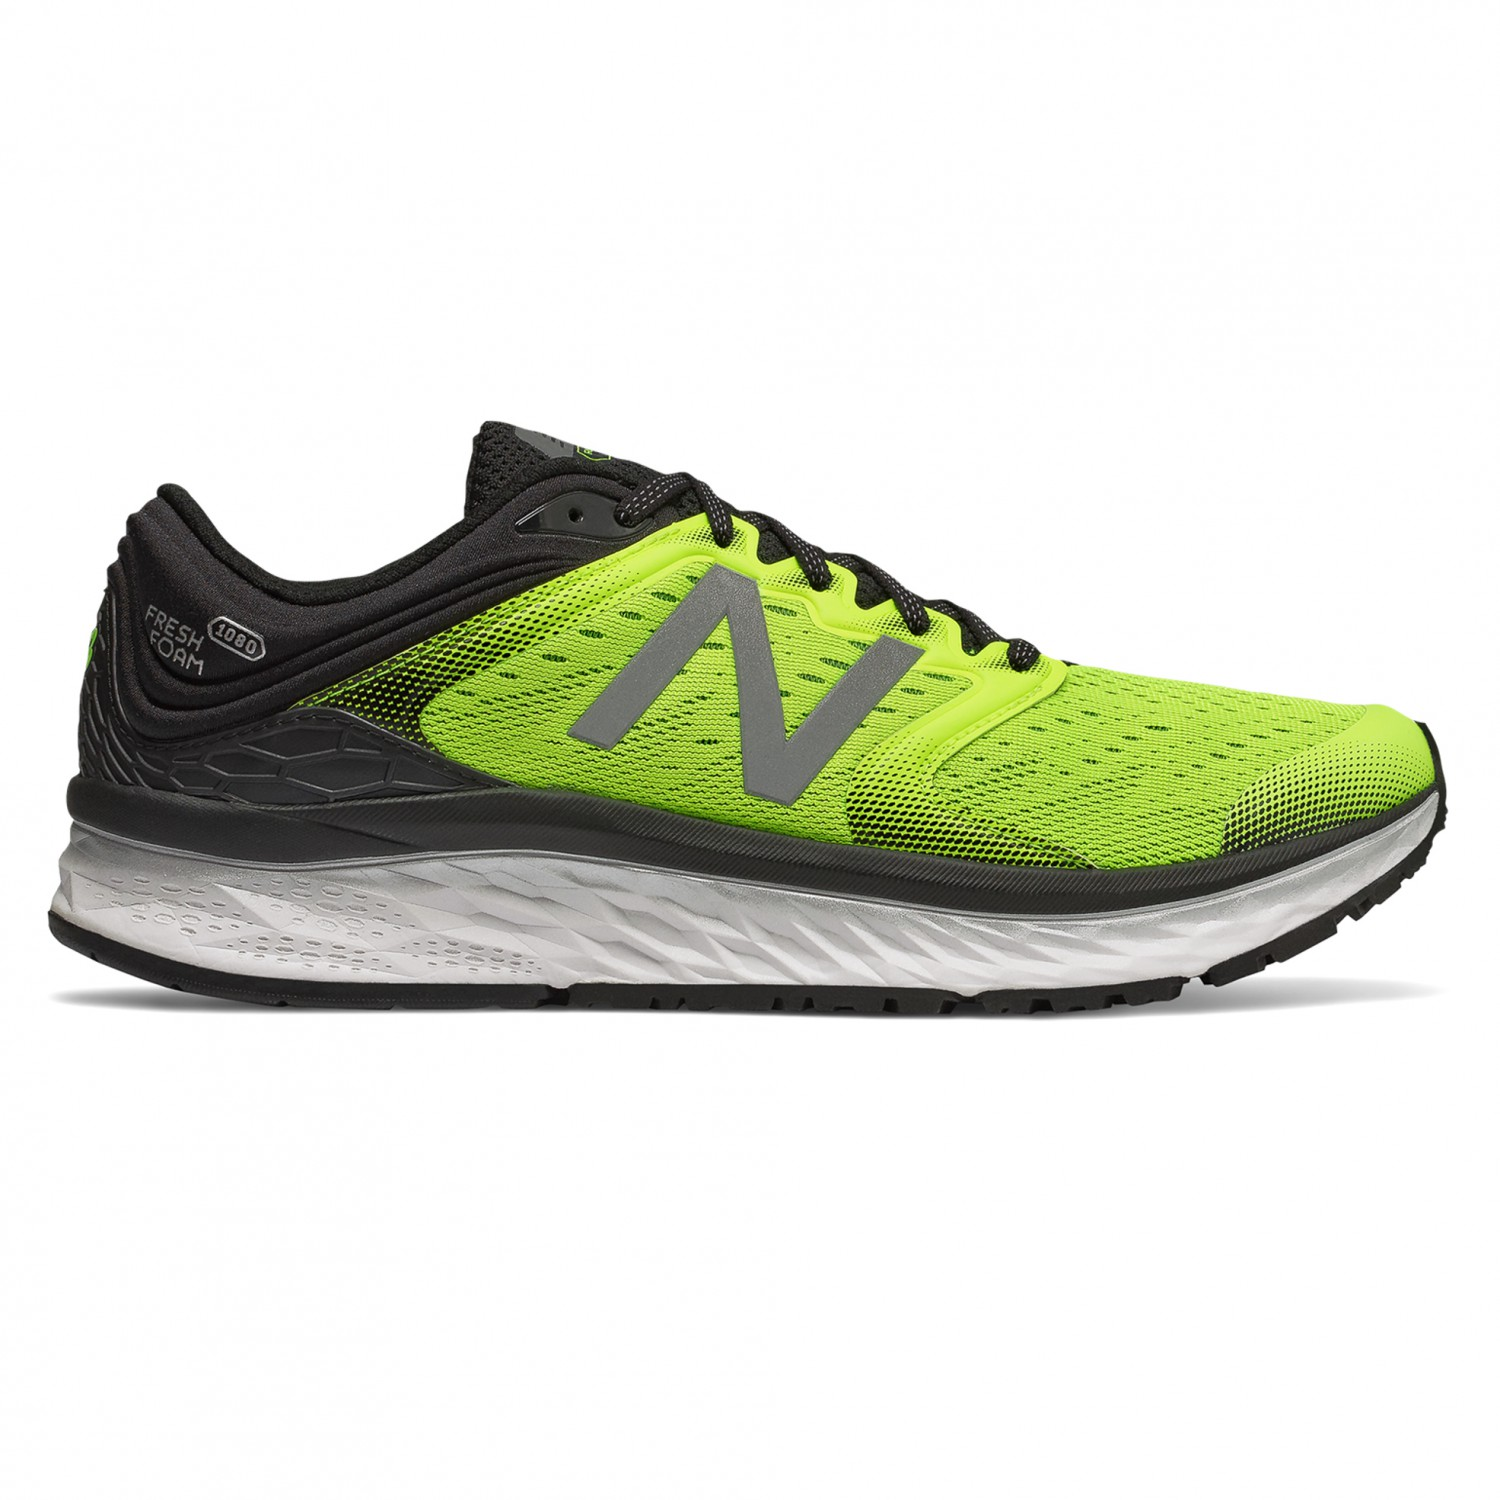 98a55d0221457 New Balance 1080 V8 - Running shoes Men s   Free EU Delivery ...